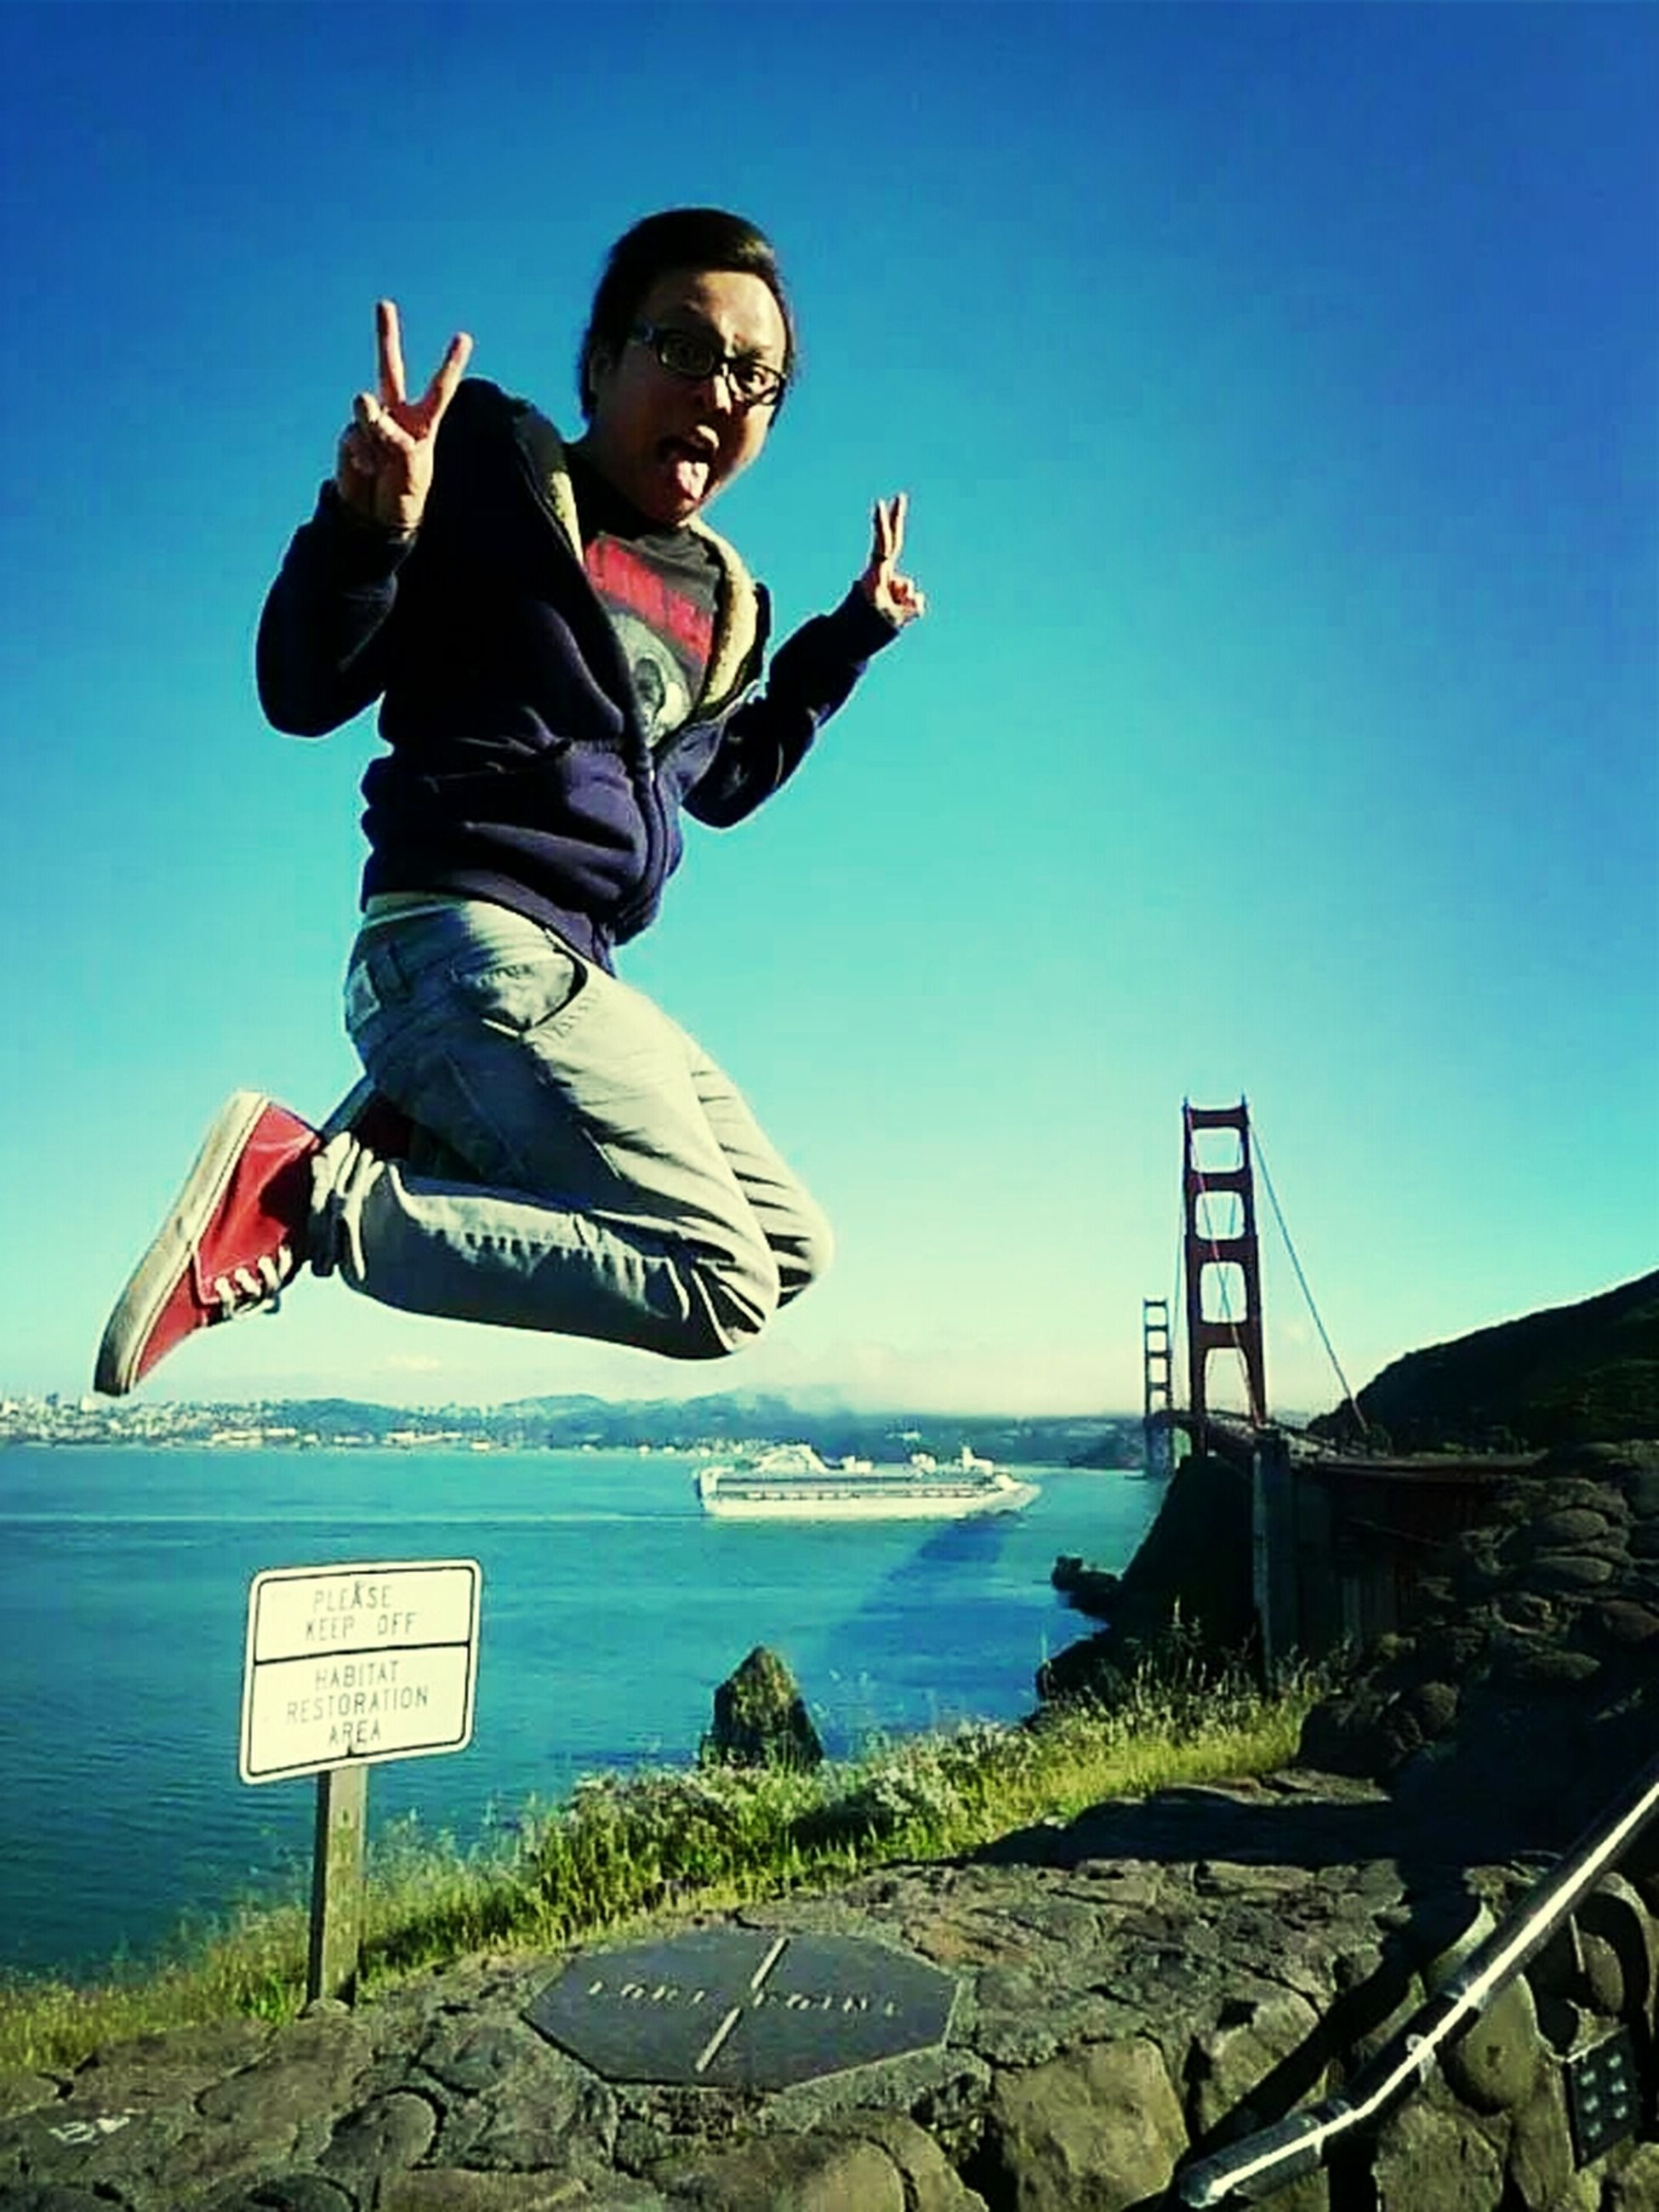 lifestyles, leisure activity, full length, young men, casual clothing, person, young adult, clear sky, blue, fun, enjoyment, copy space, mid adult men, jumping, smiling, vacations, low angle view, happiness